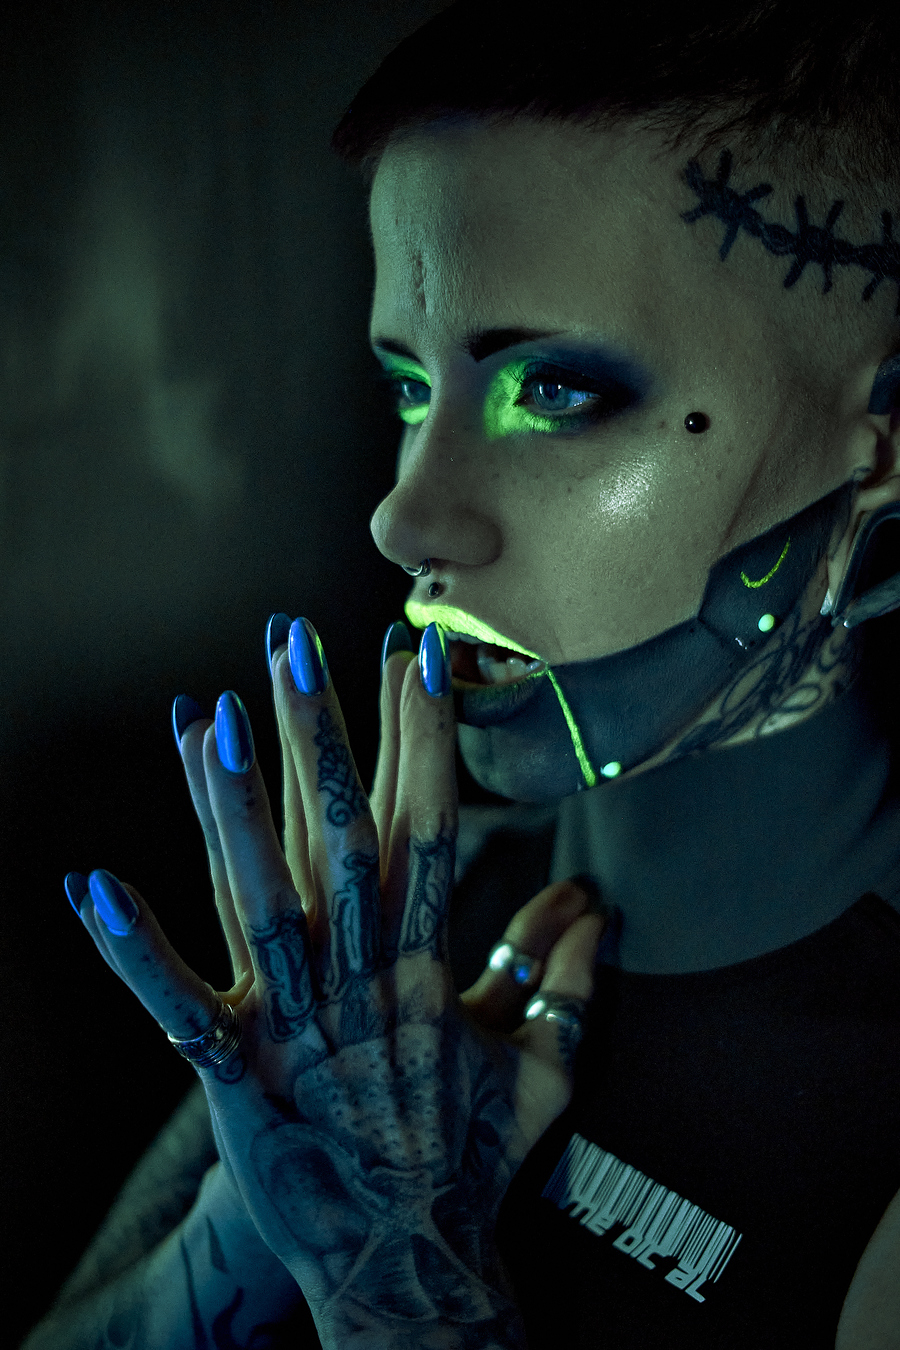 Cyberpunk / Photography by Fusco Media Ltd, Makeup by RoosJames / Uploaded 5th March 2020 @ 05:23 PM